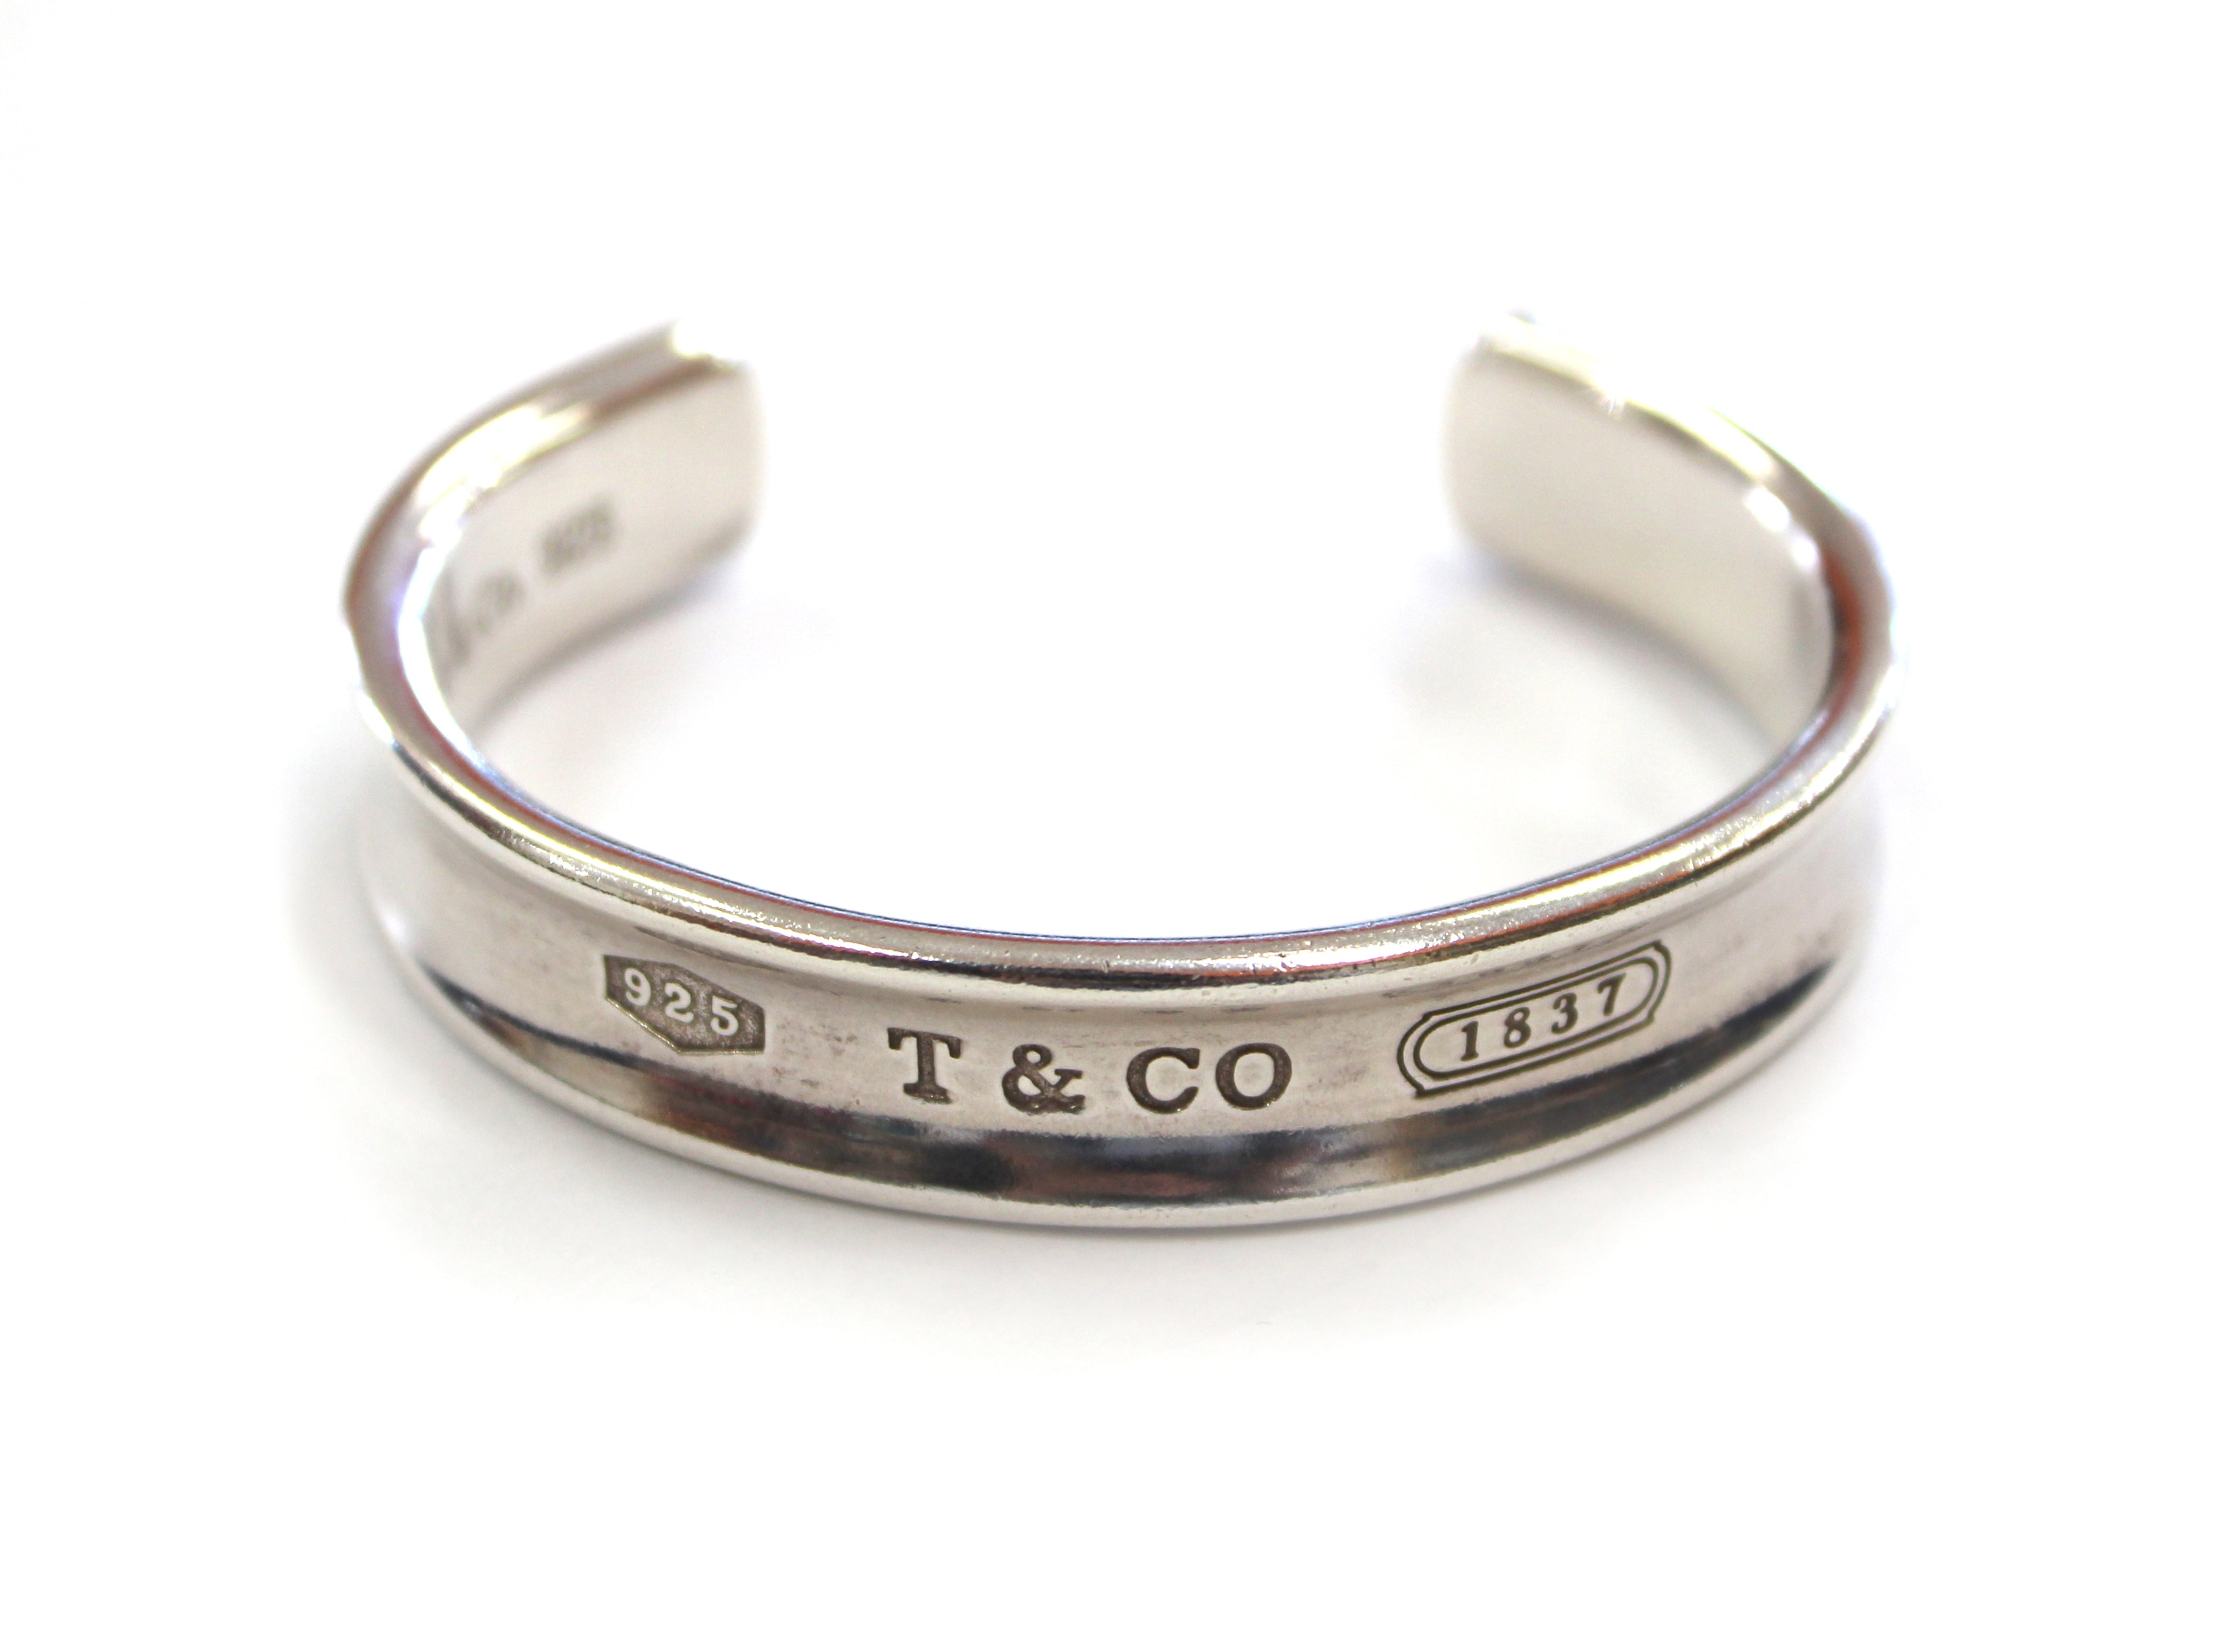 Authentic Tiffany & Co. Sterling Silver 1837 Cuff Bracelet Bangle